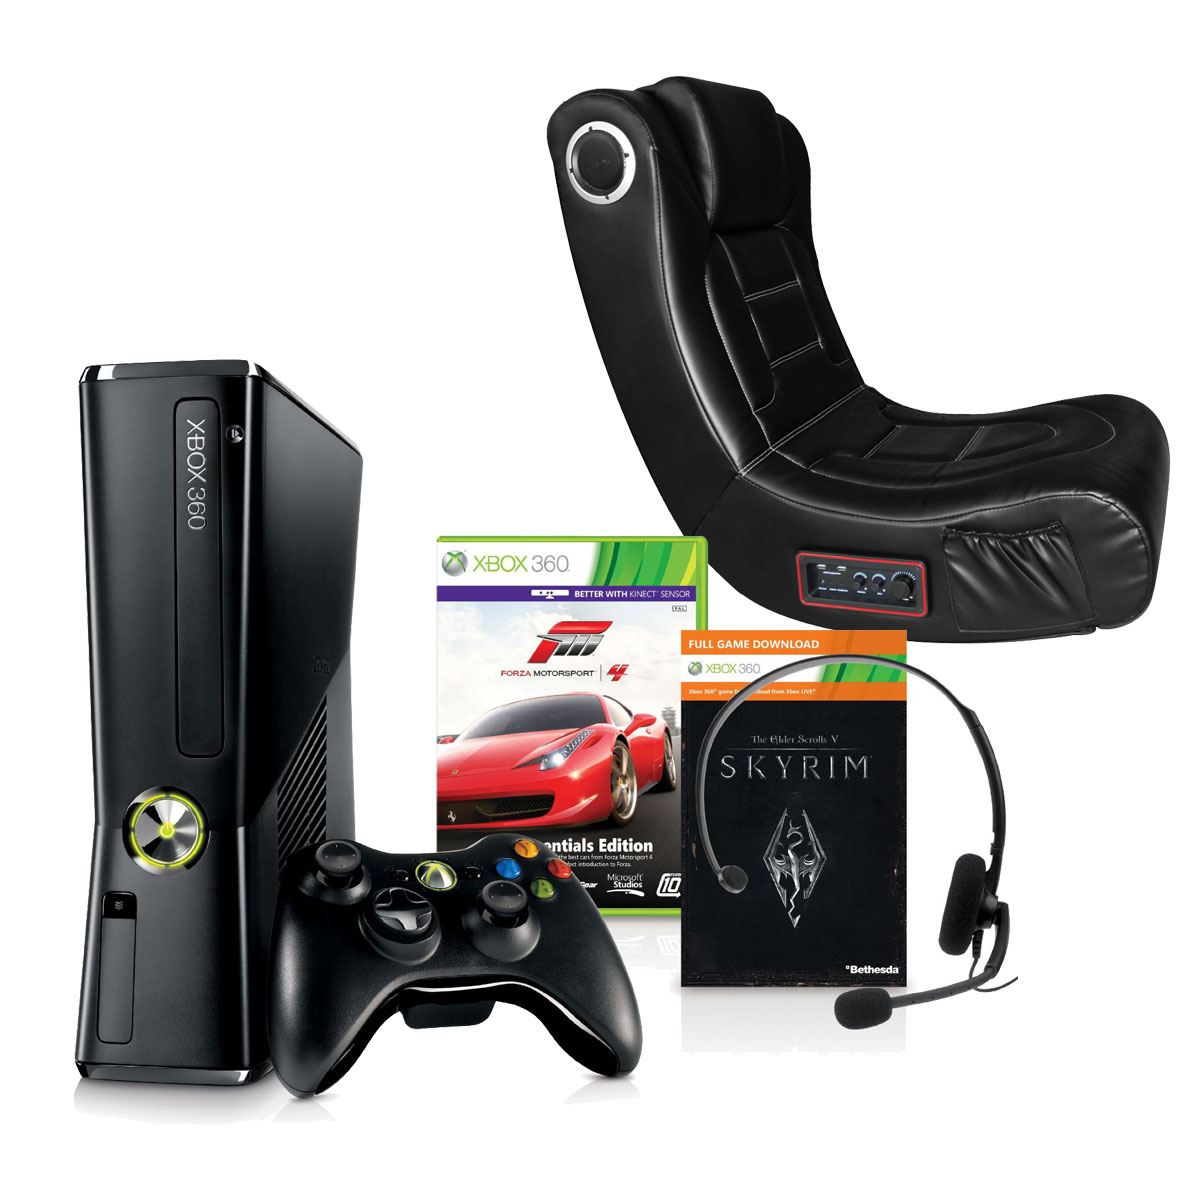 xbox gaming chair wooden restaurant chairs microsoft 360 250 go pack forza motorsport 4 43 skyrim